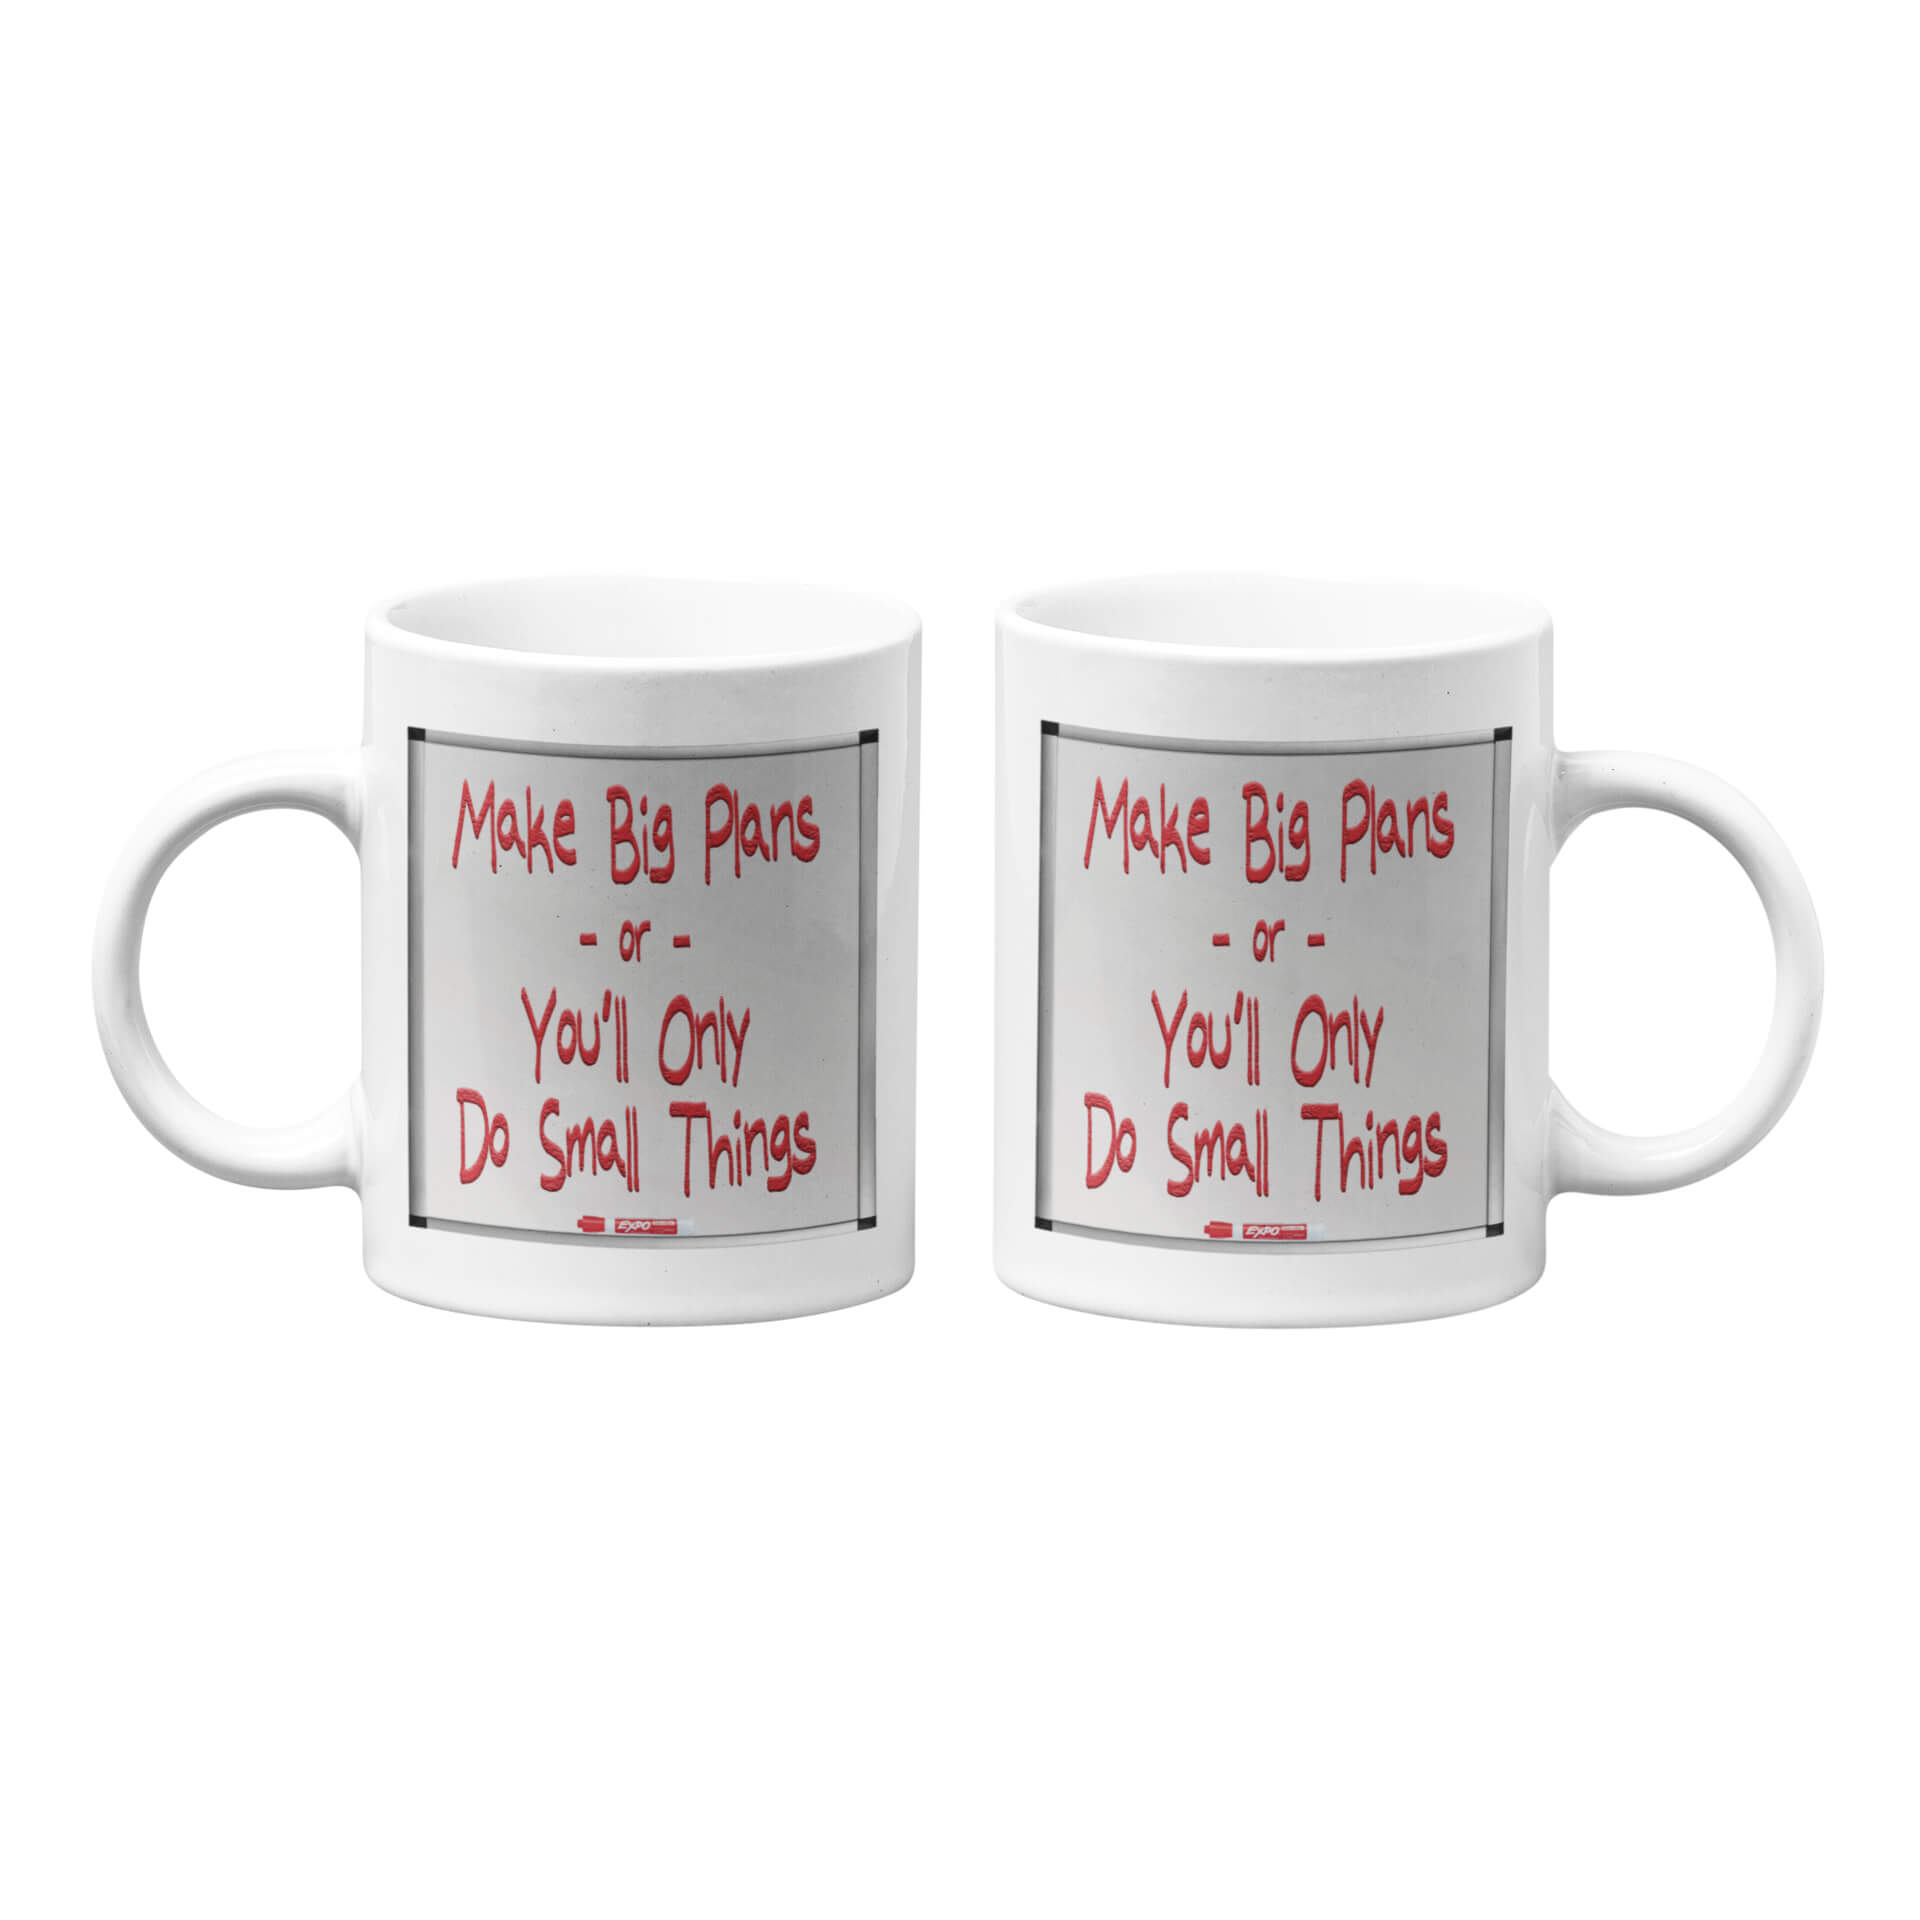 Make Big Plans or You'll Only So Small Things Mug